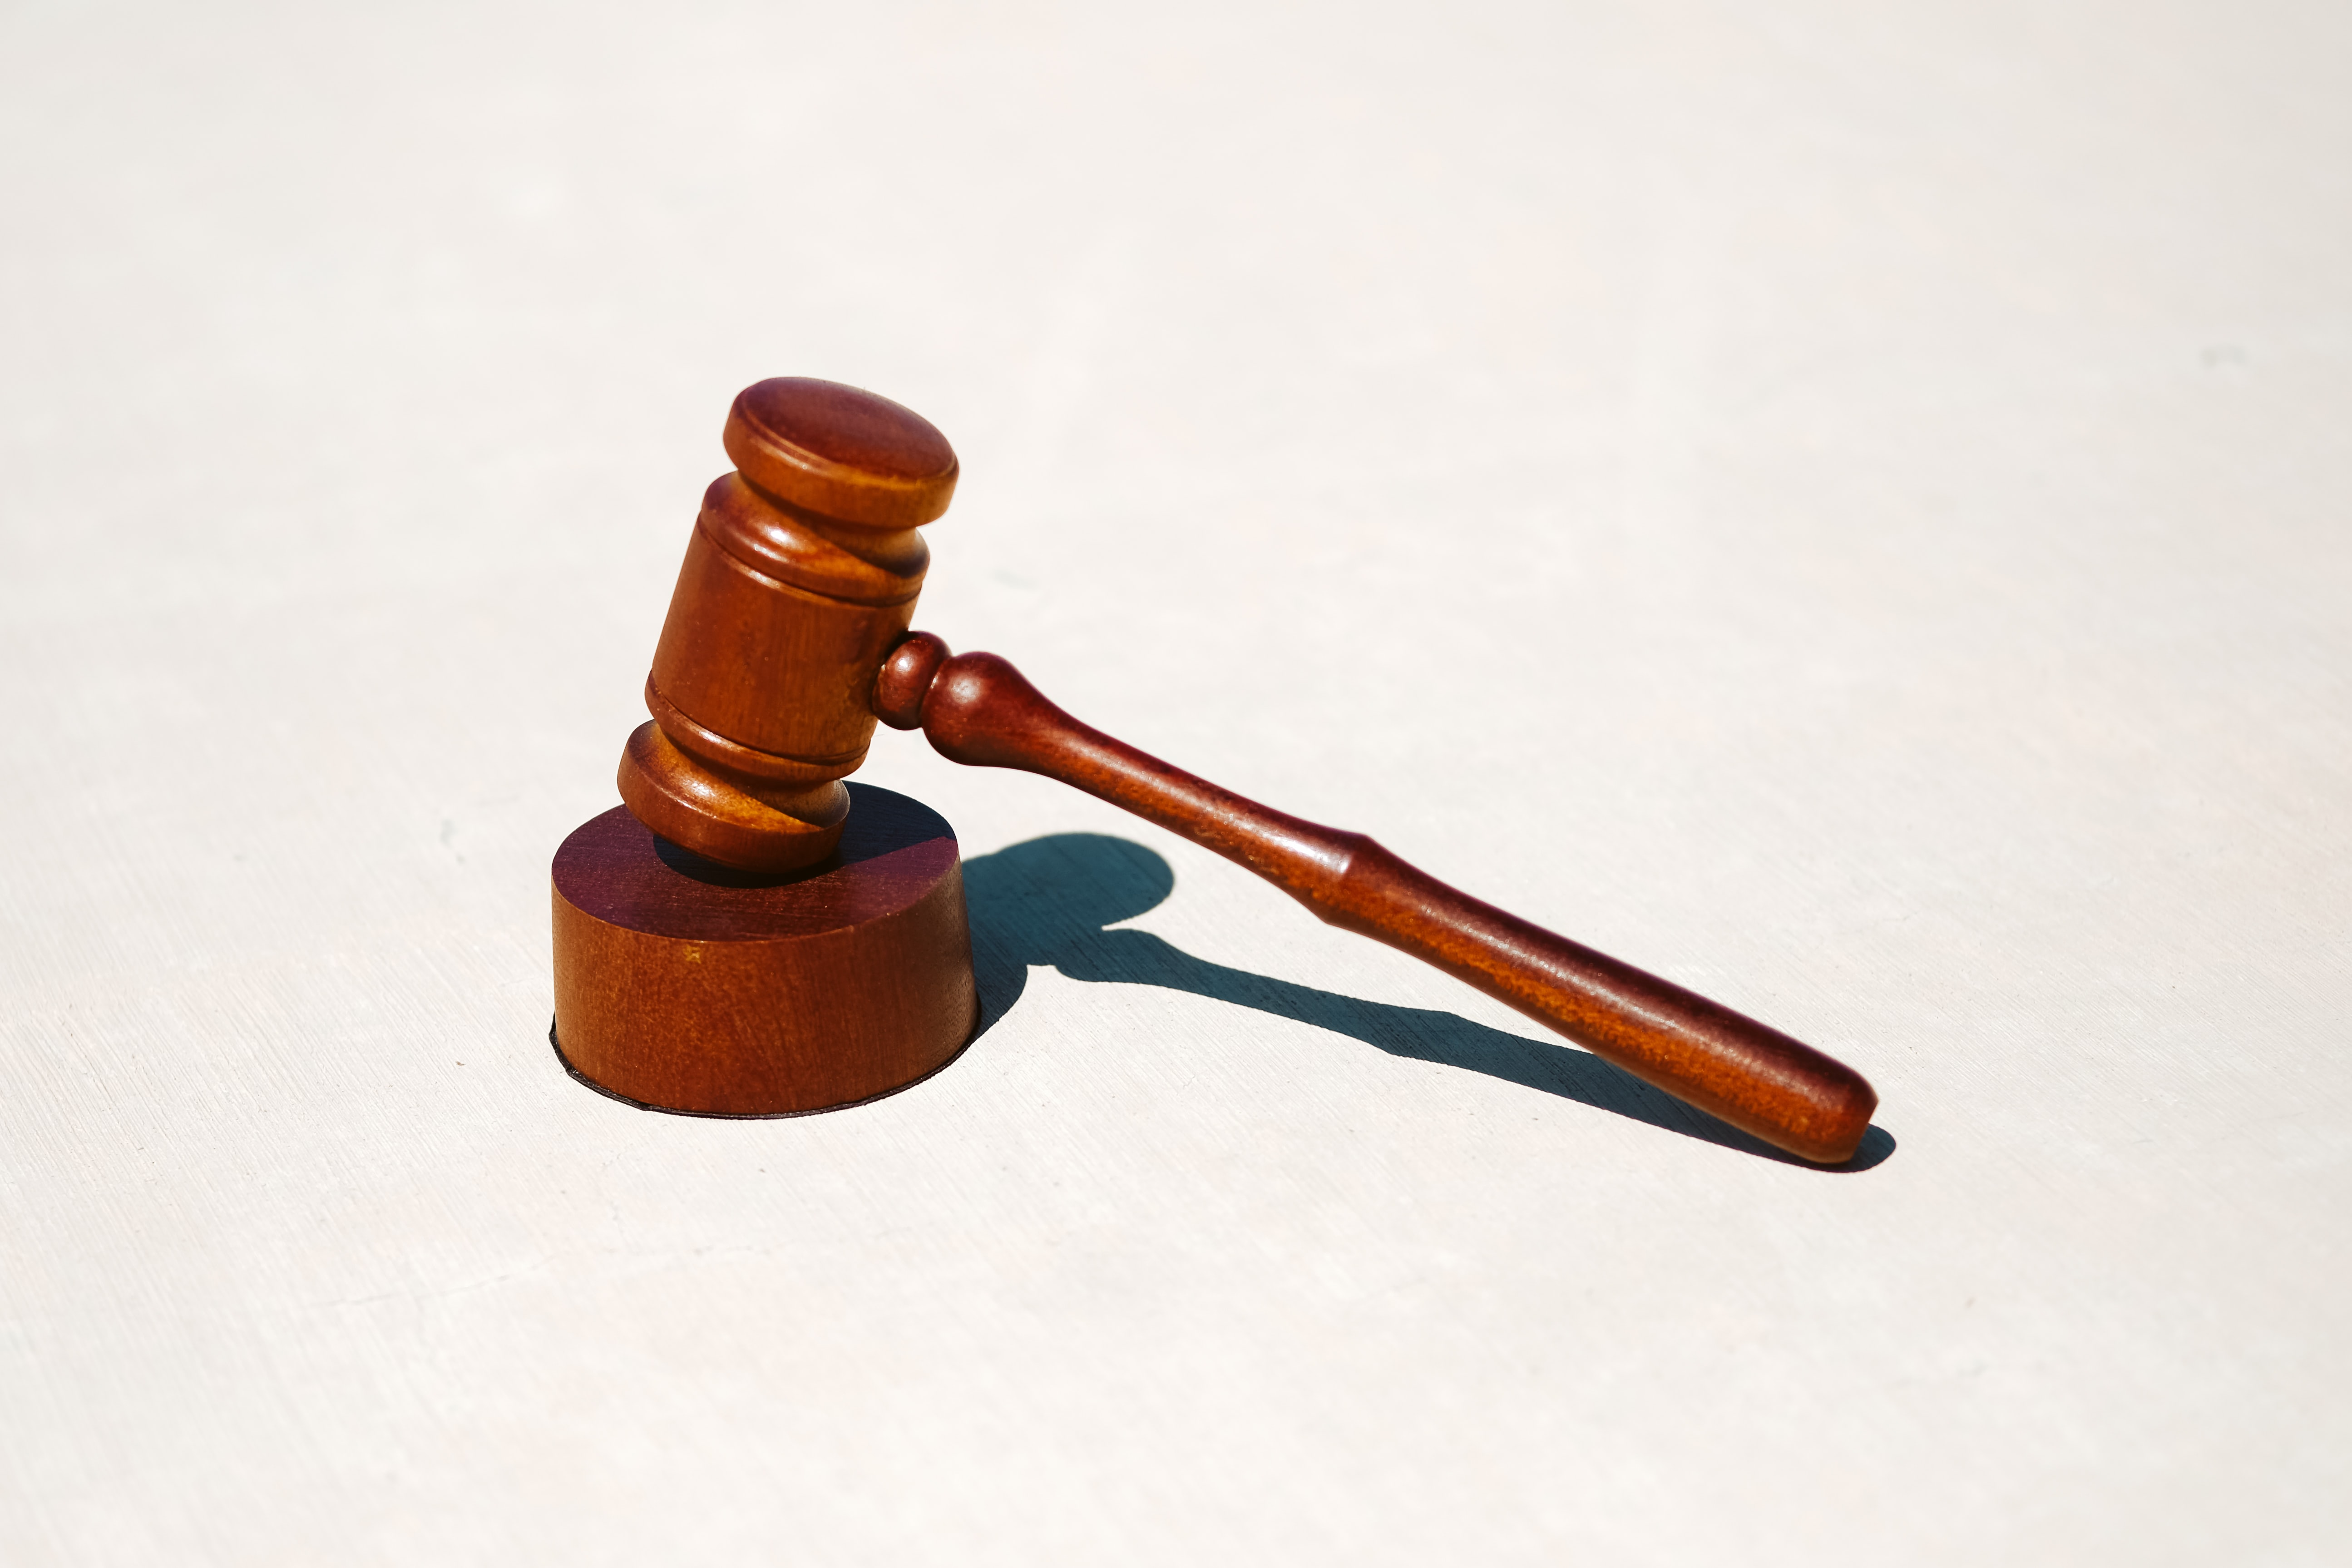 A wooden gavel and block on a white background